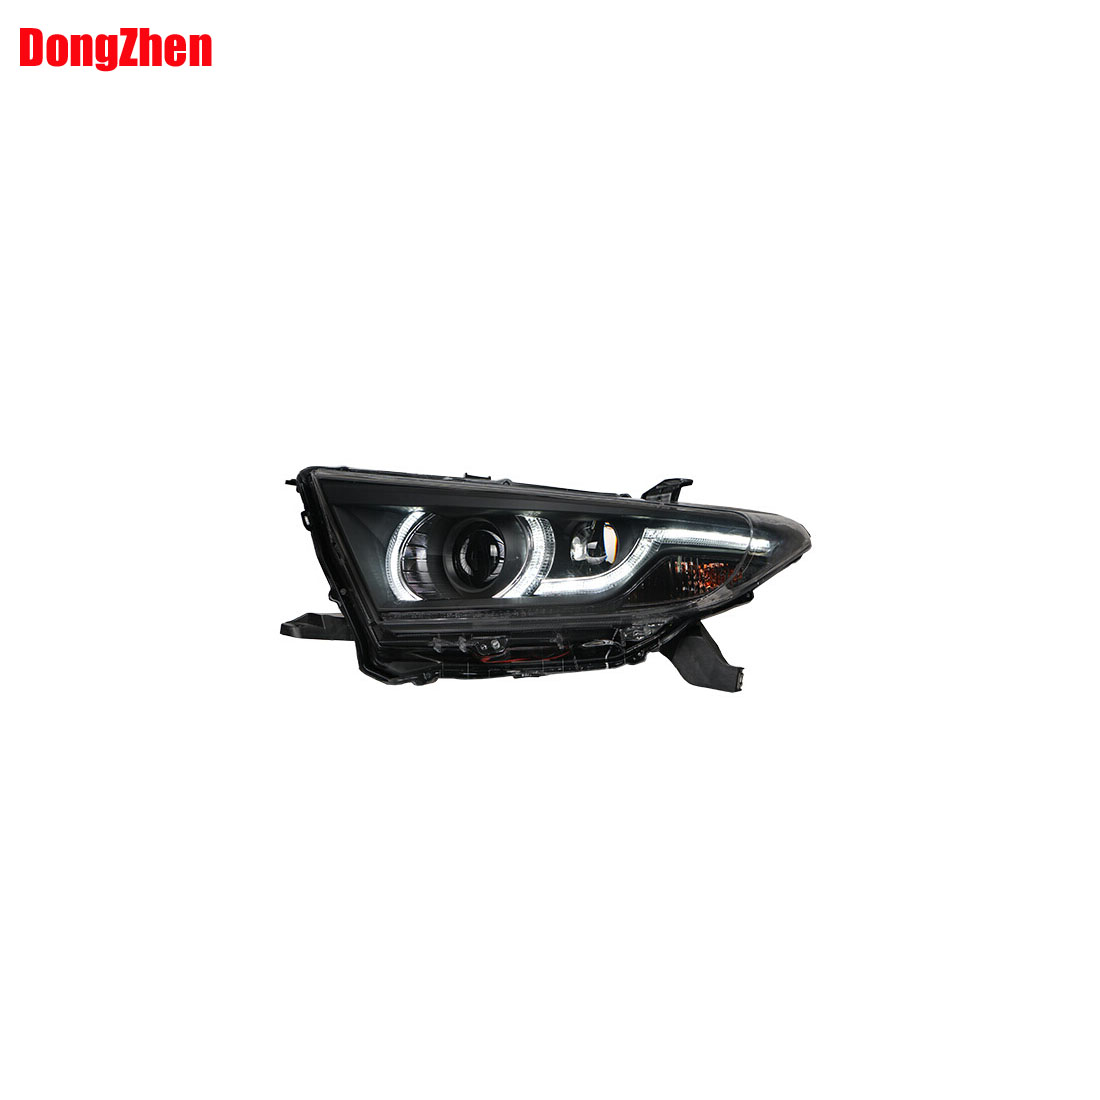 Dong Zhen Fit For TOYOTA Highlander LED Headlight Angel Eyes 2012 to 2014 car styling<br><br>Aliexpress